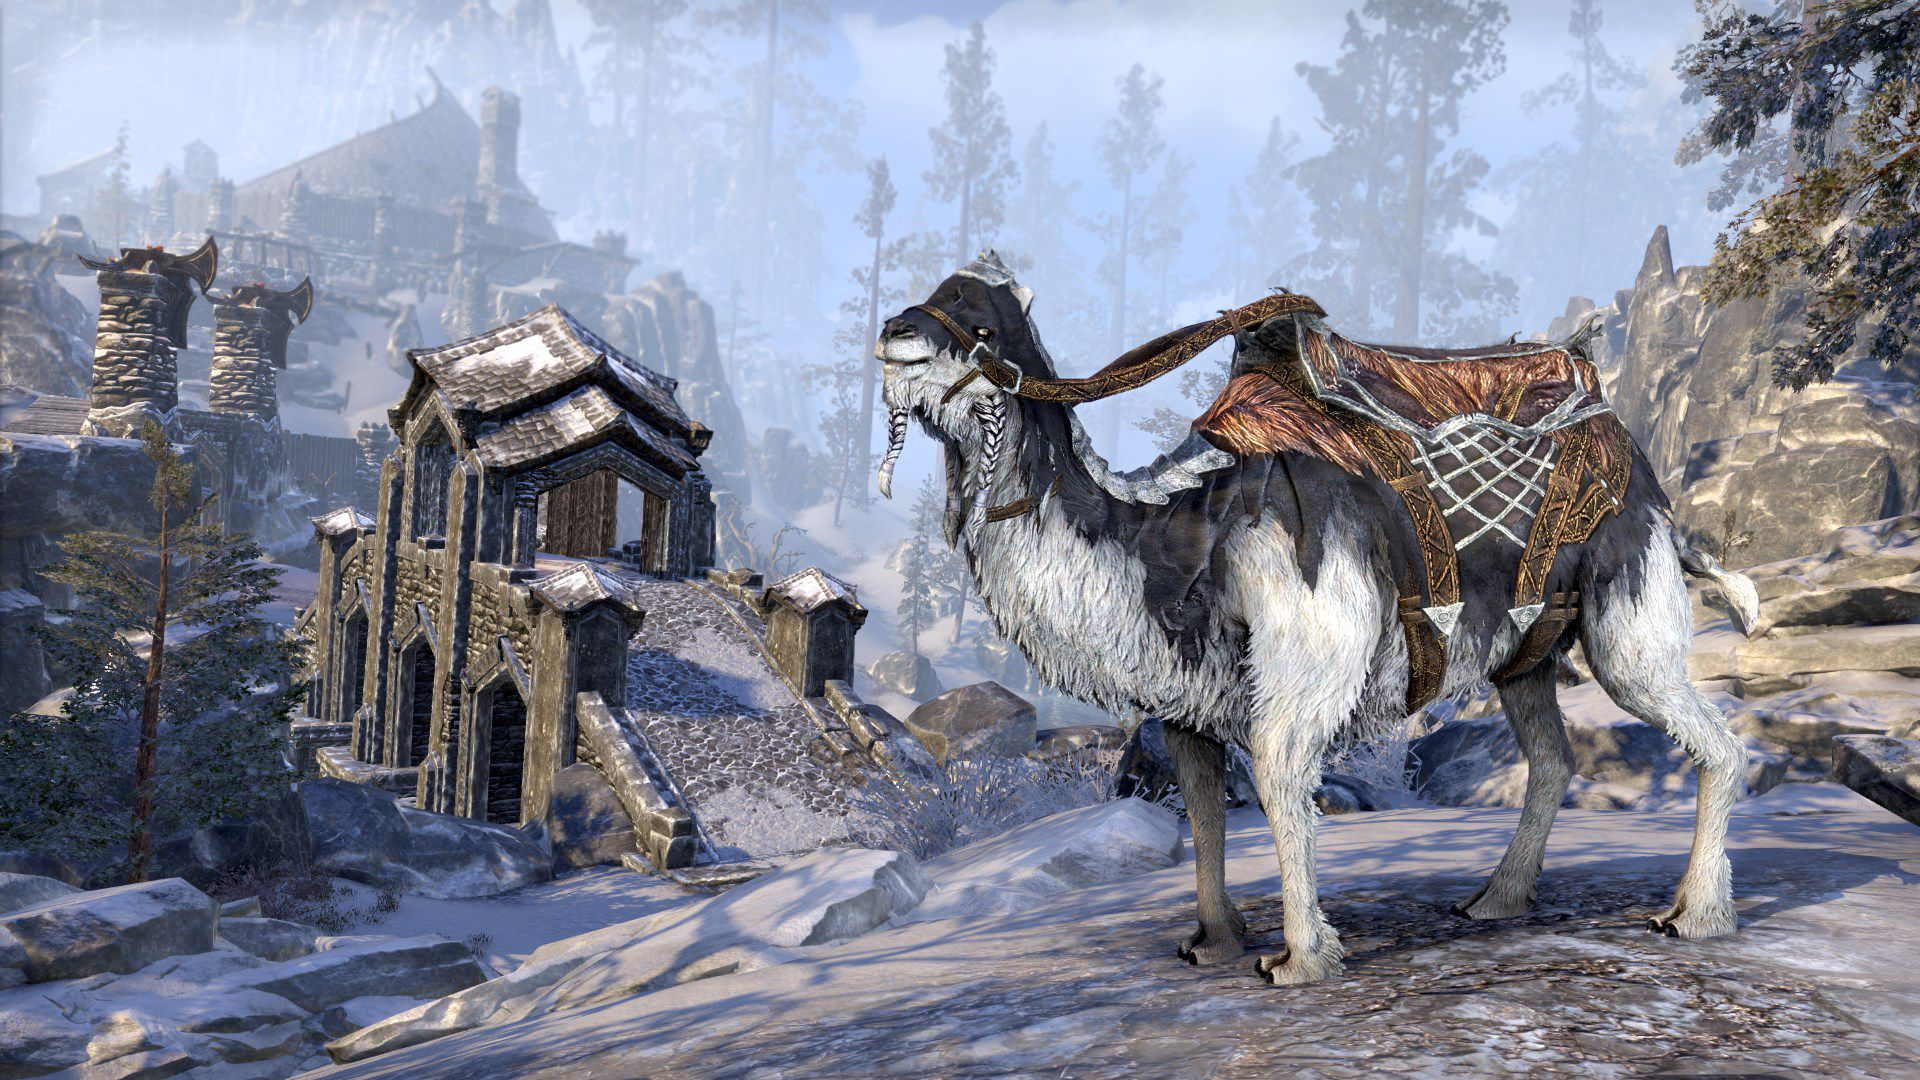 Frostbane Camel, Apex Mount, Scalecaller Crown Crate (image by Zenimax Online)